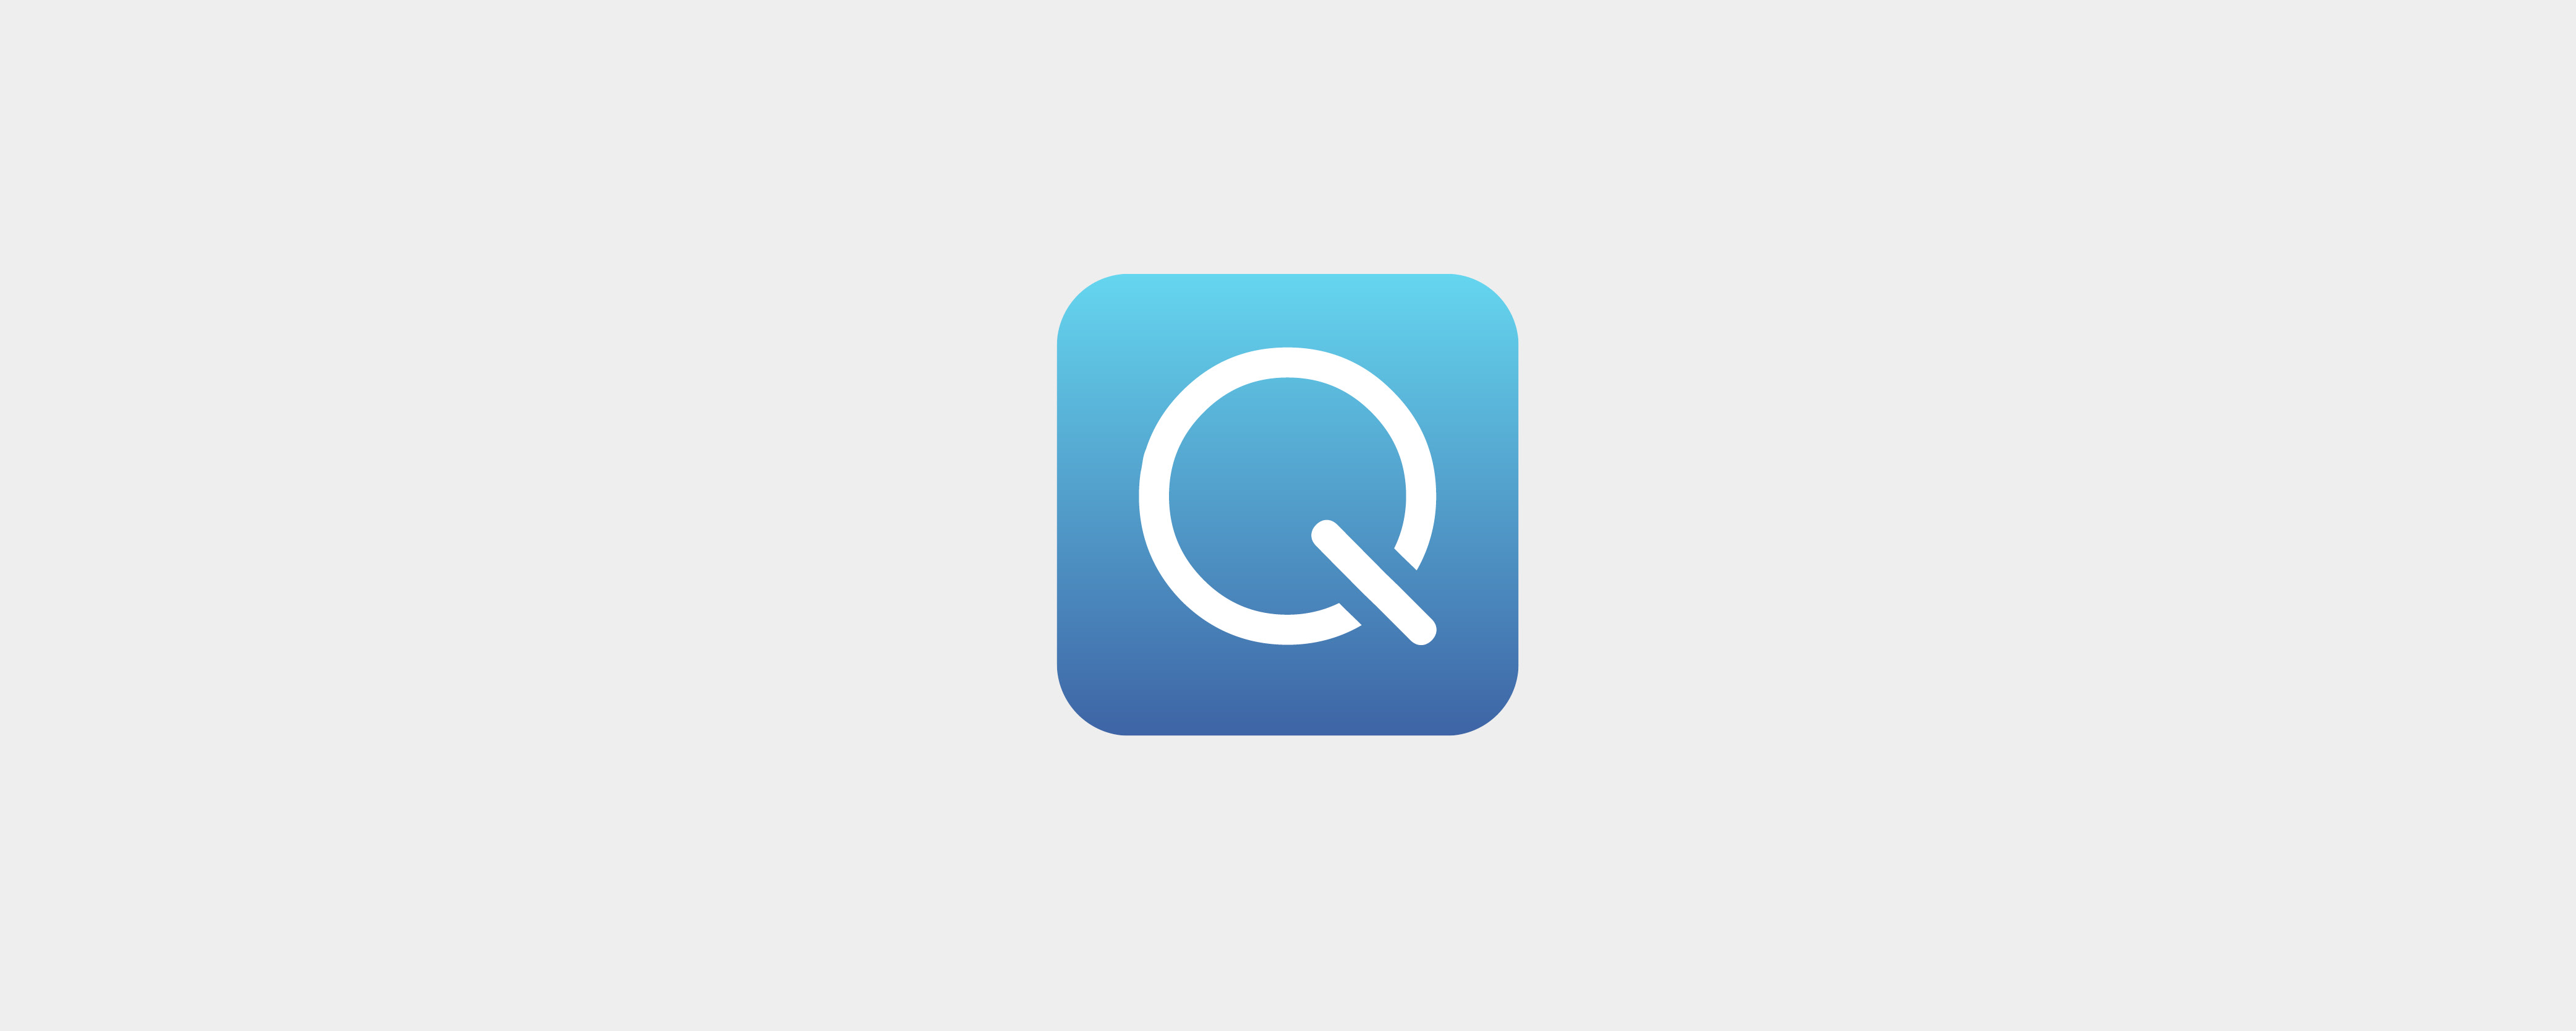 Qoios App Icon Design, Branding, Corporate Identity, Freelance Grafik Designer Berlin